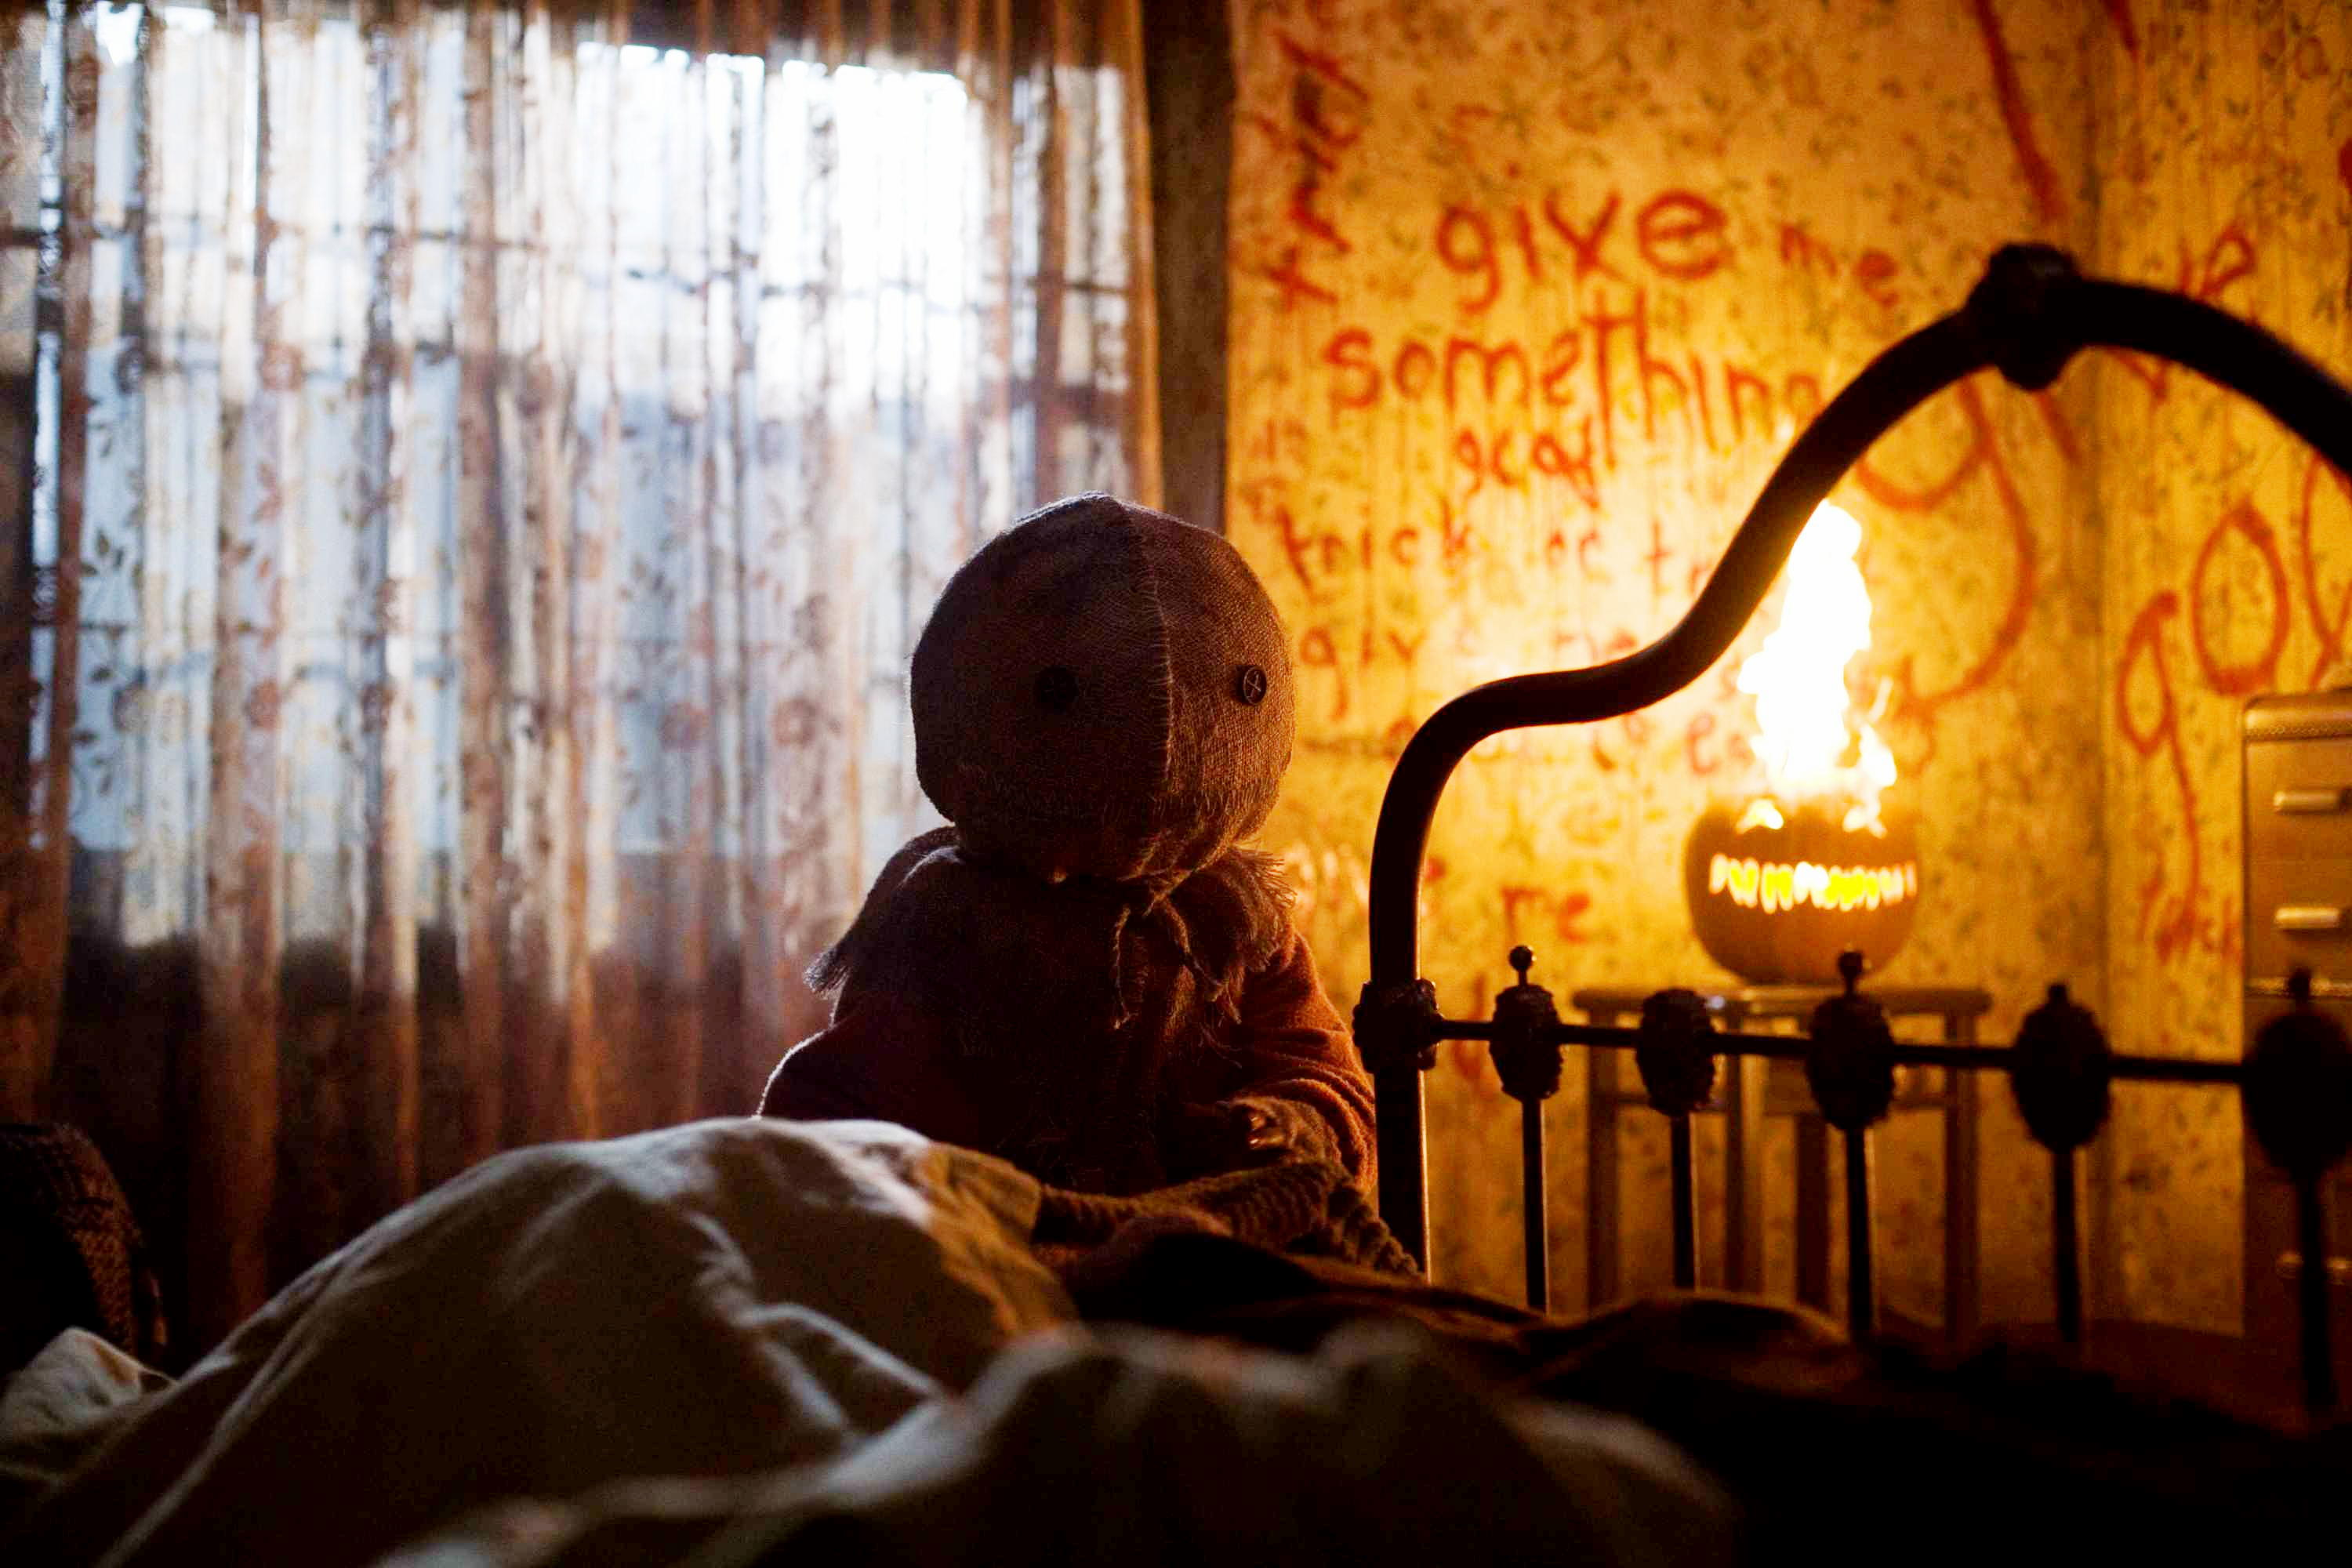 7 Trick R Treat Hd Wallpapers Background Images Wallpaper Abyss